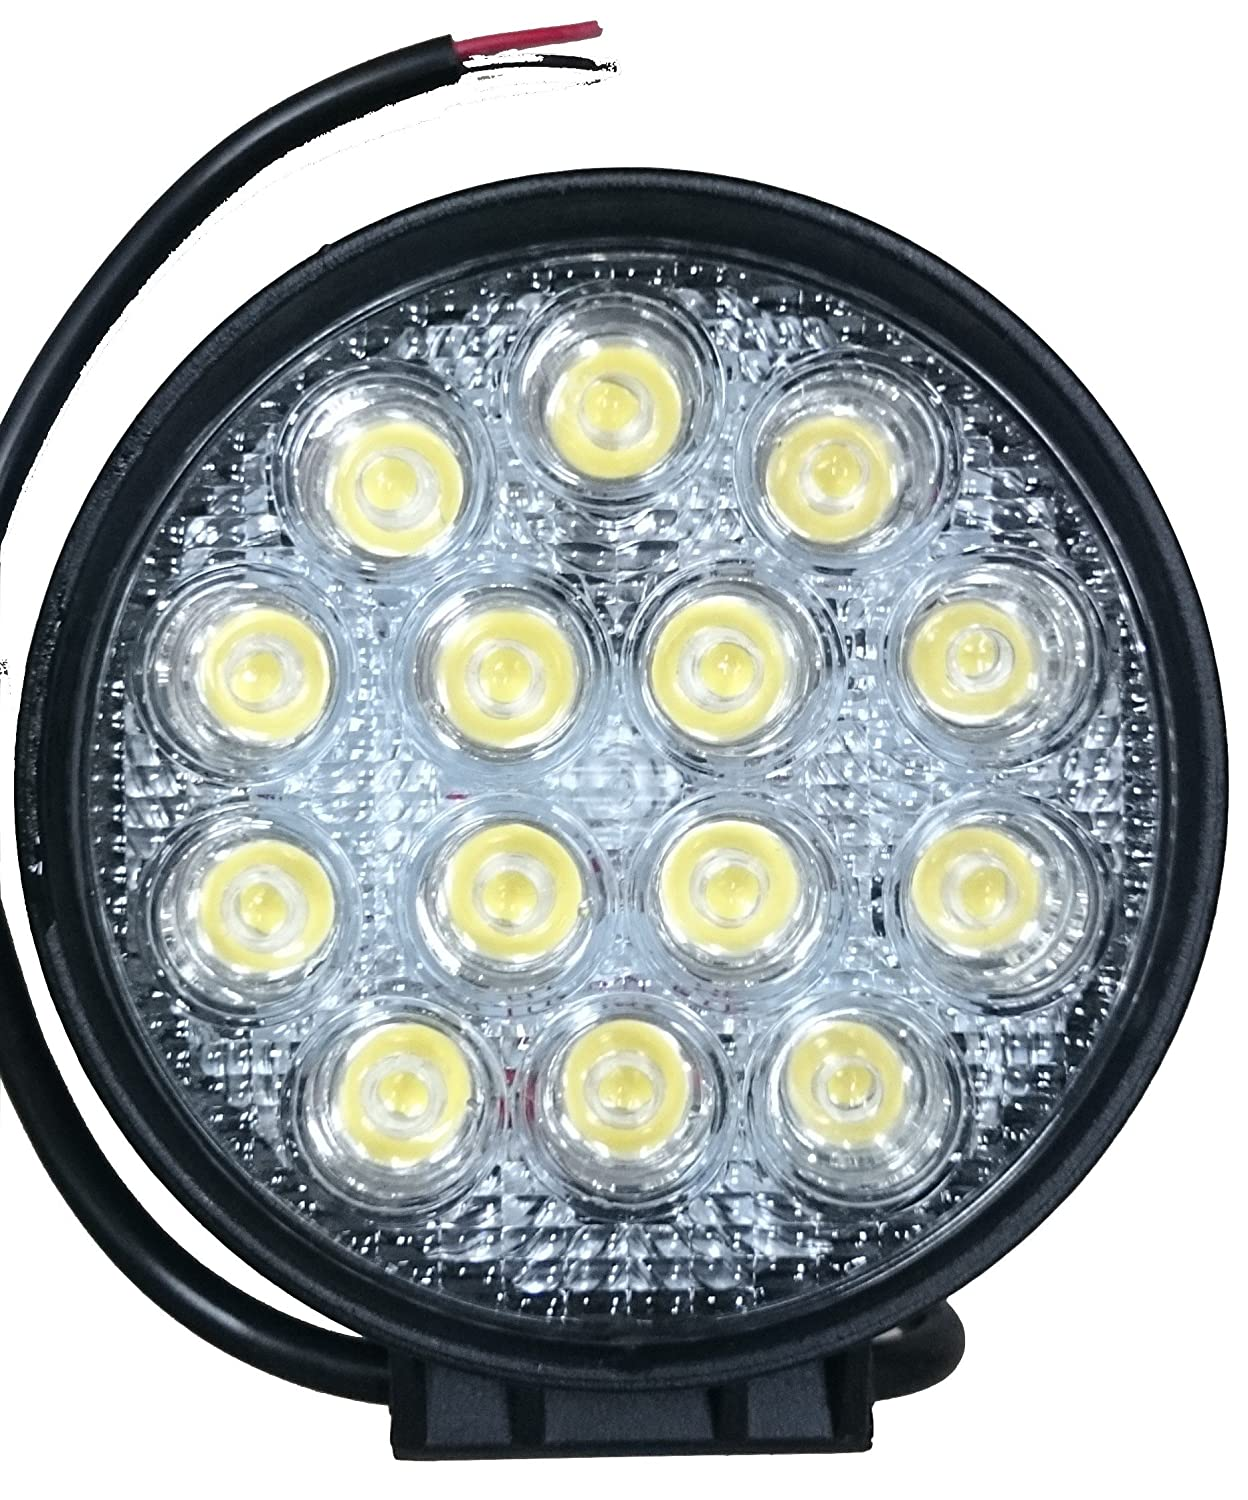 hid from led light lights fog xb universal type u morimoto lighting